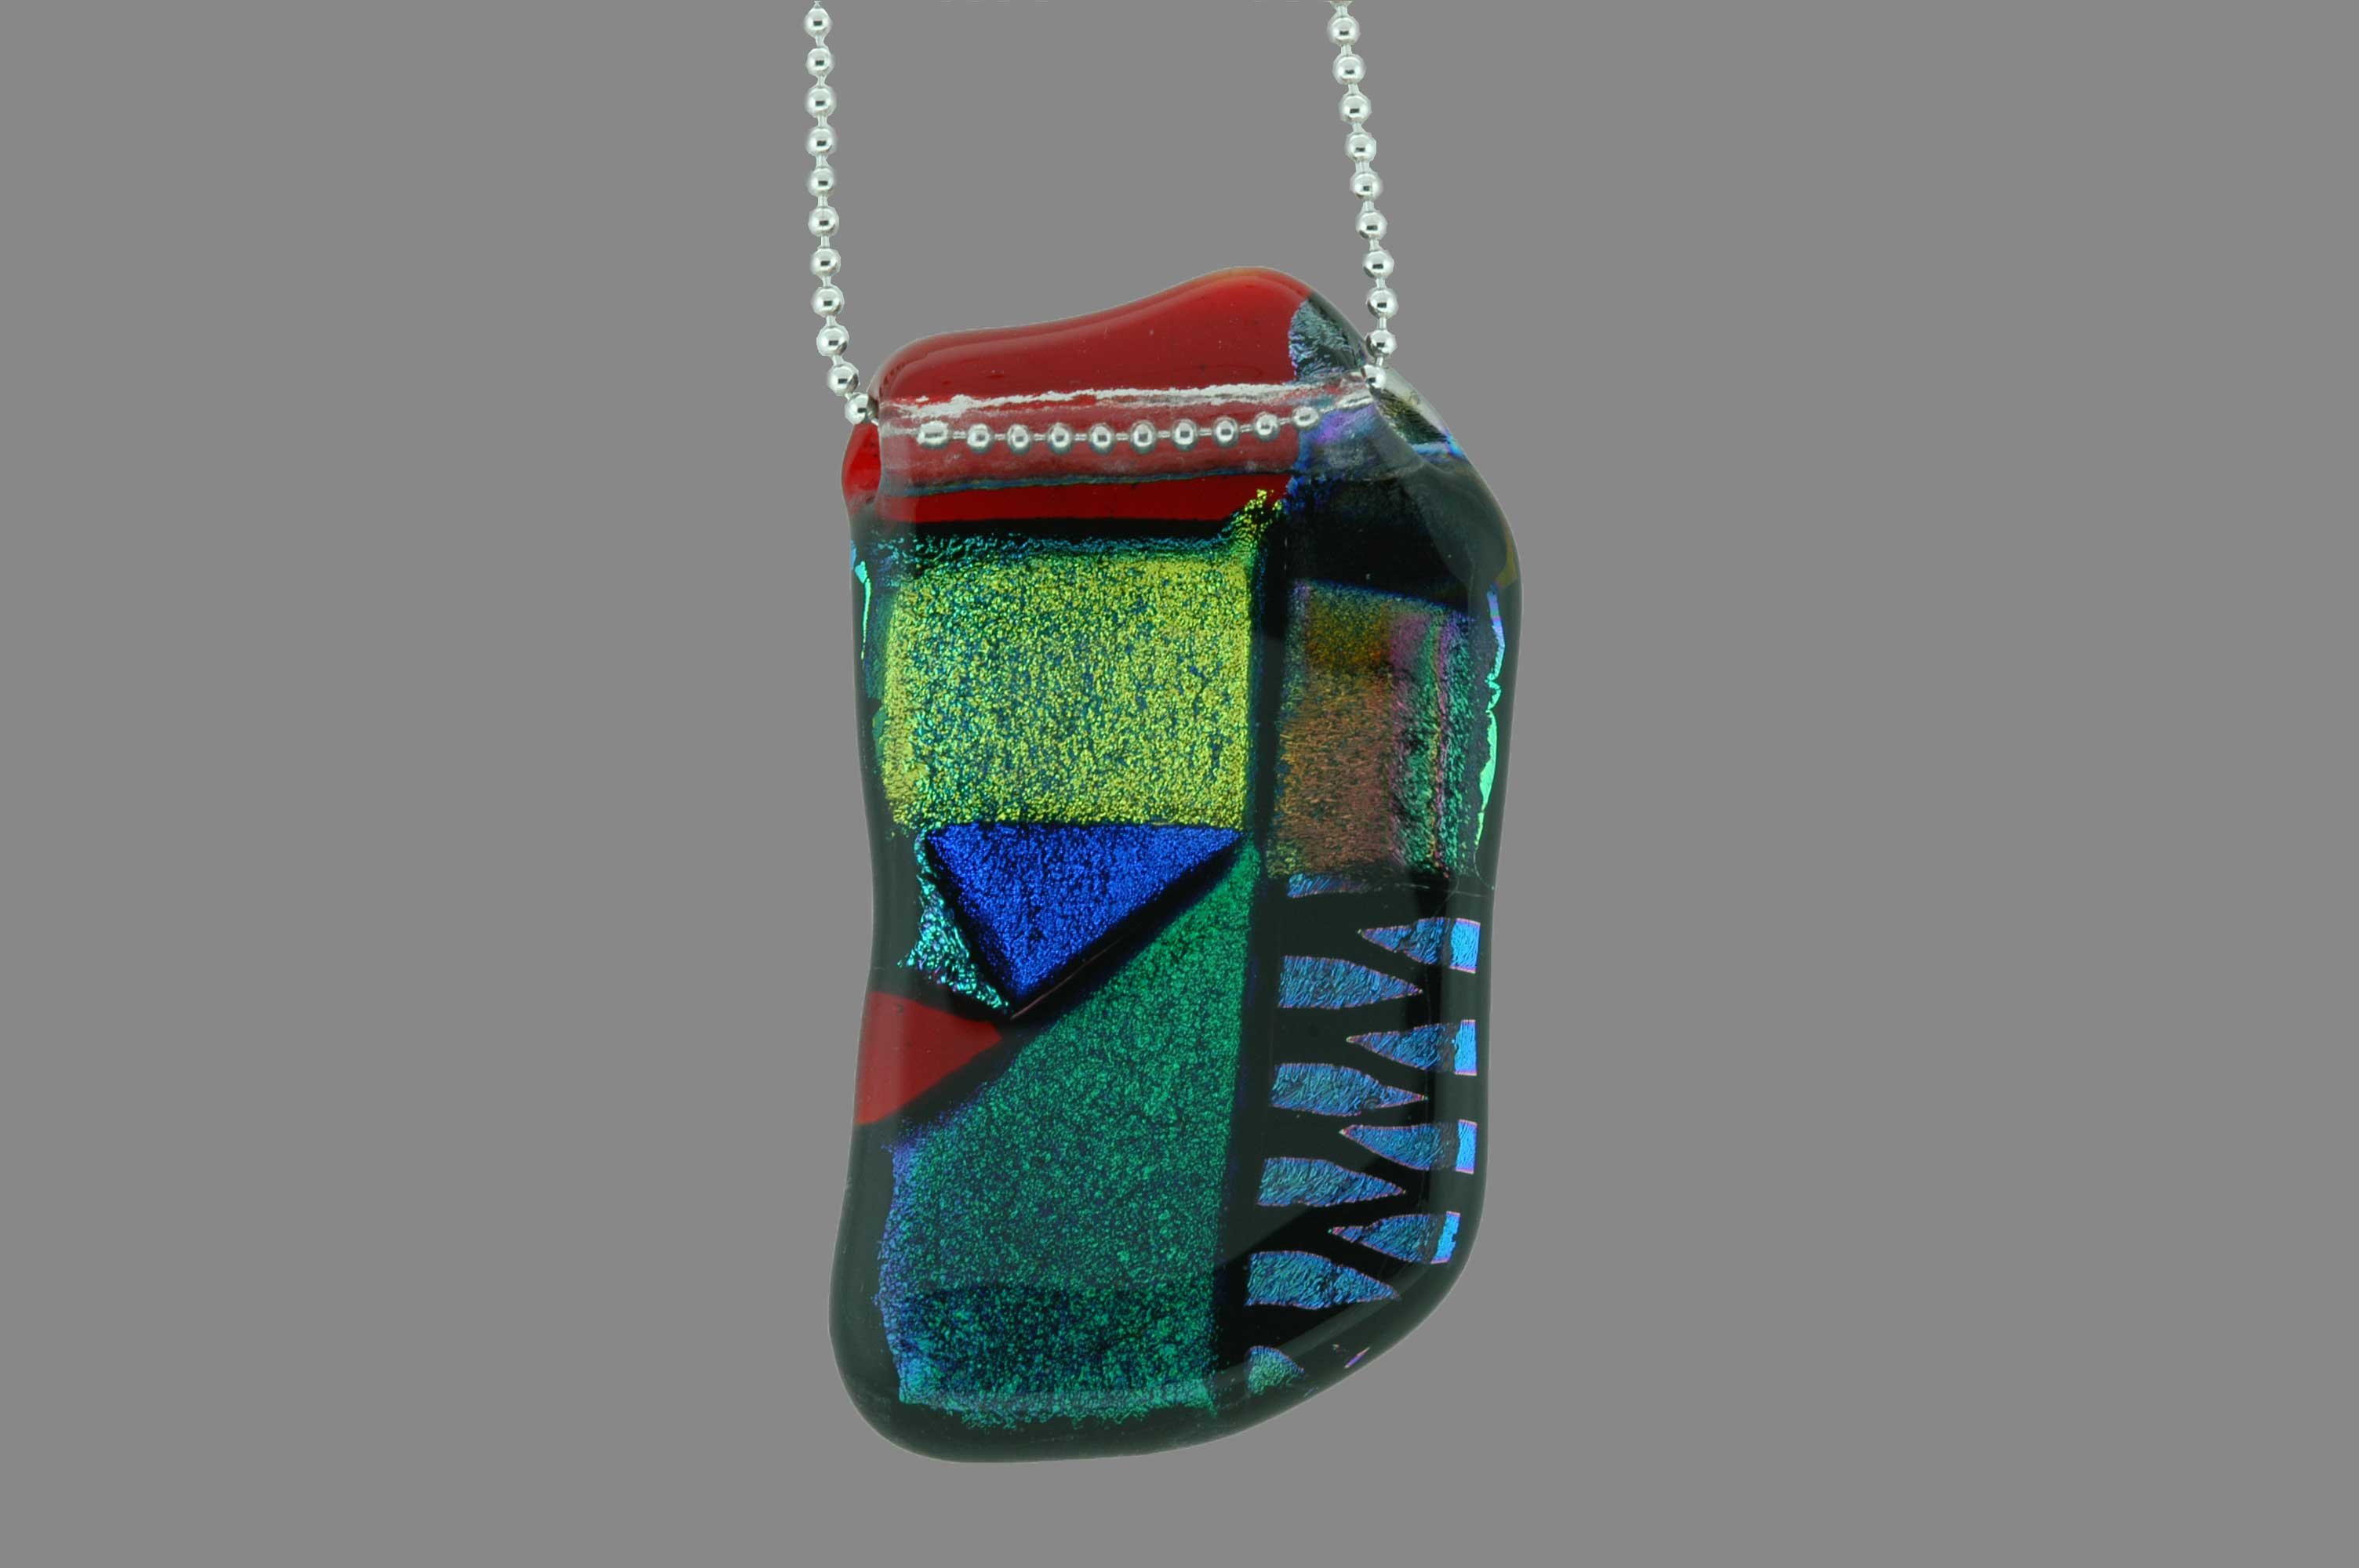 Mosaic glass pendant by Evelyn Floret